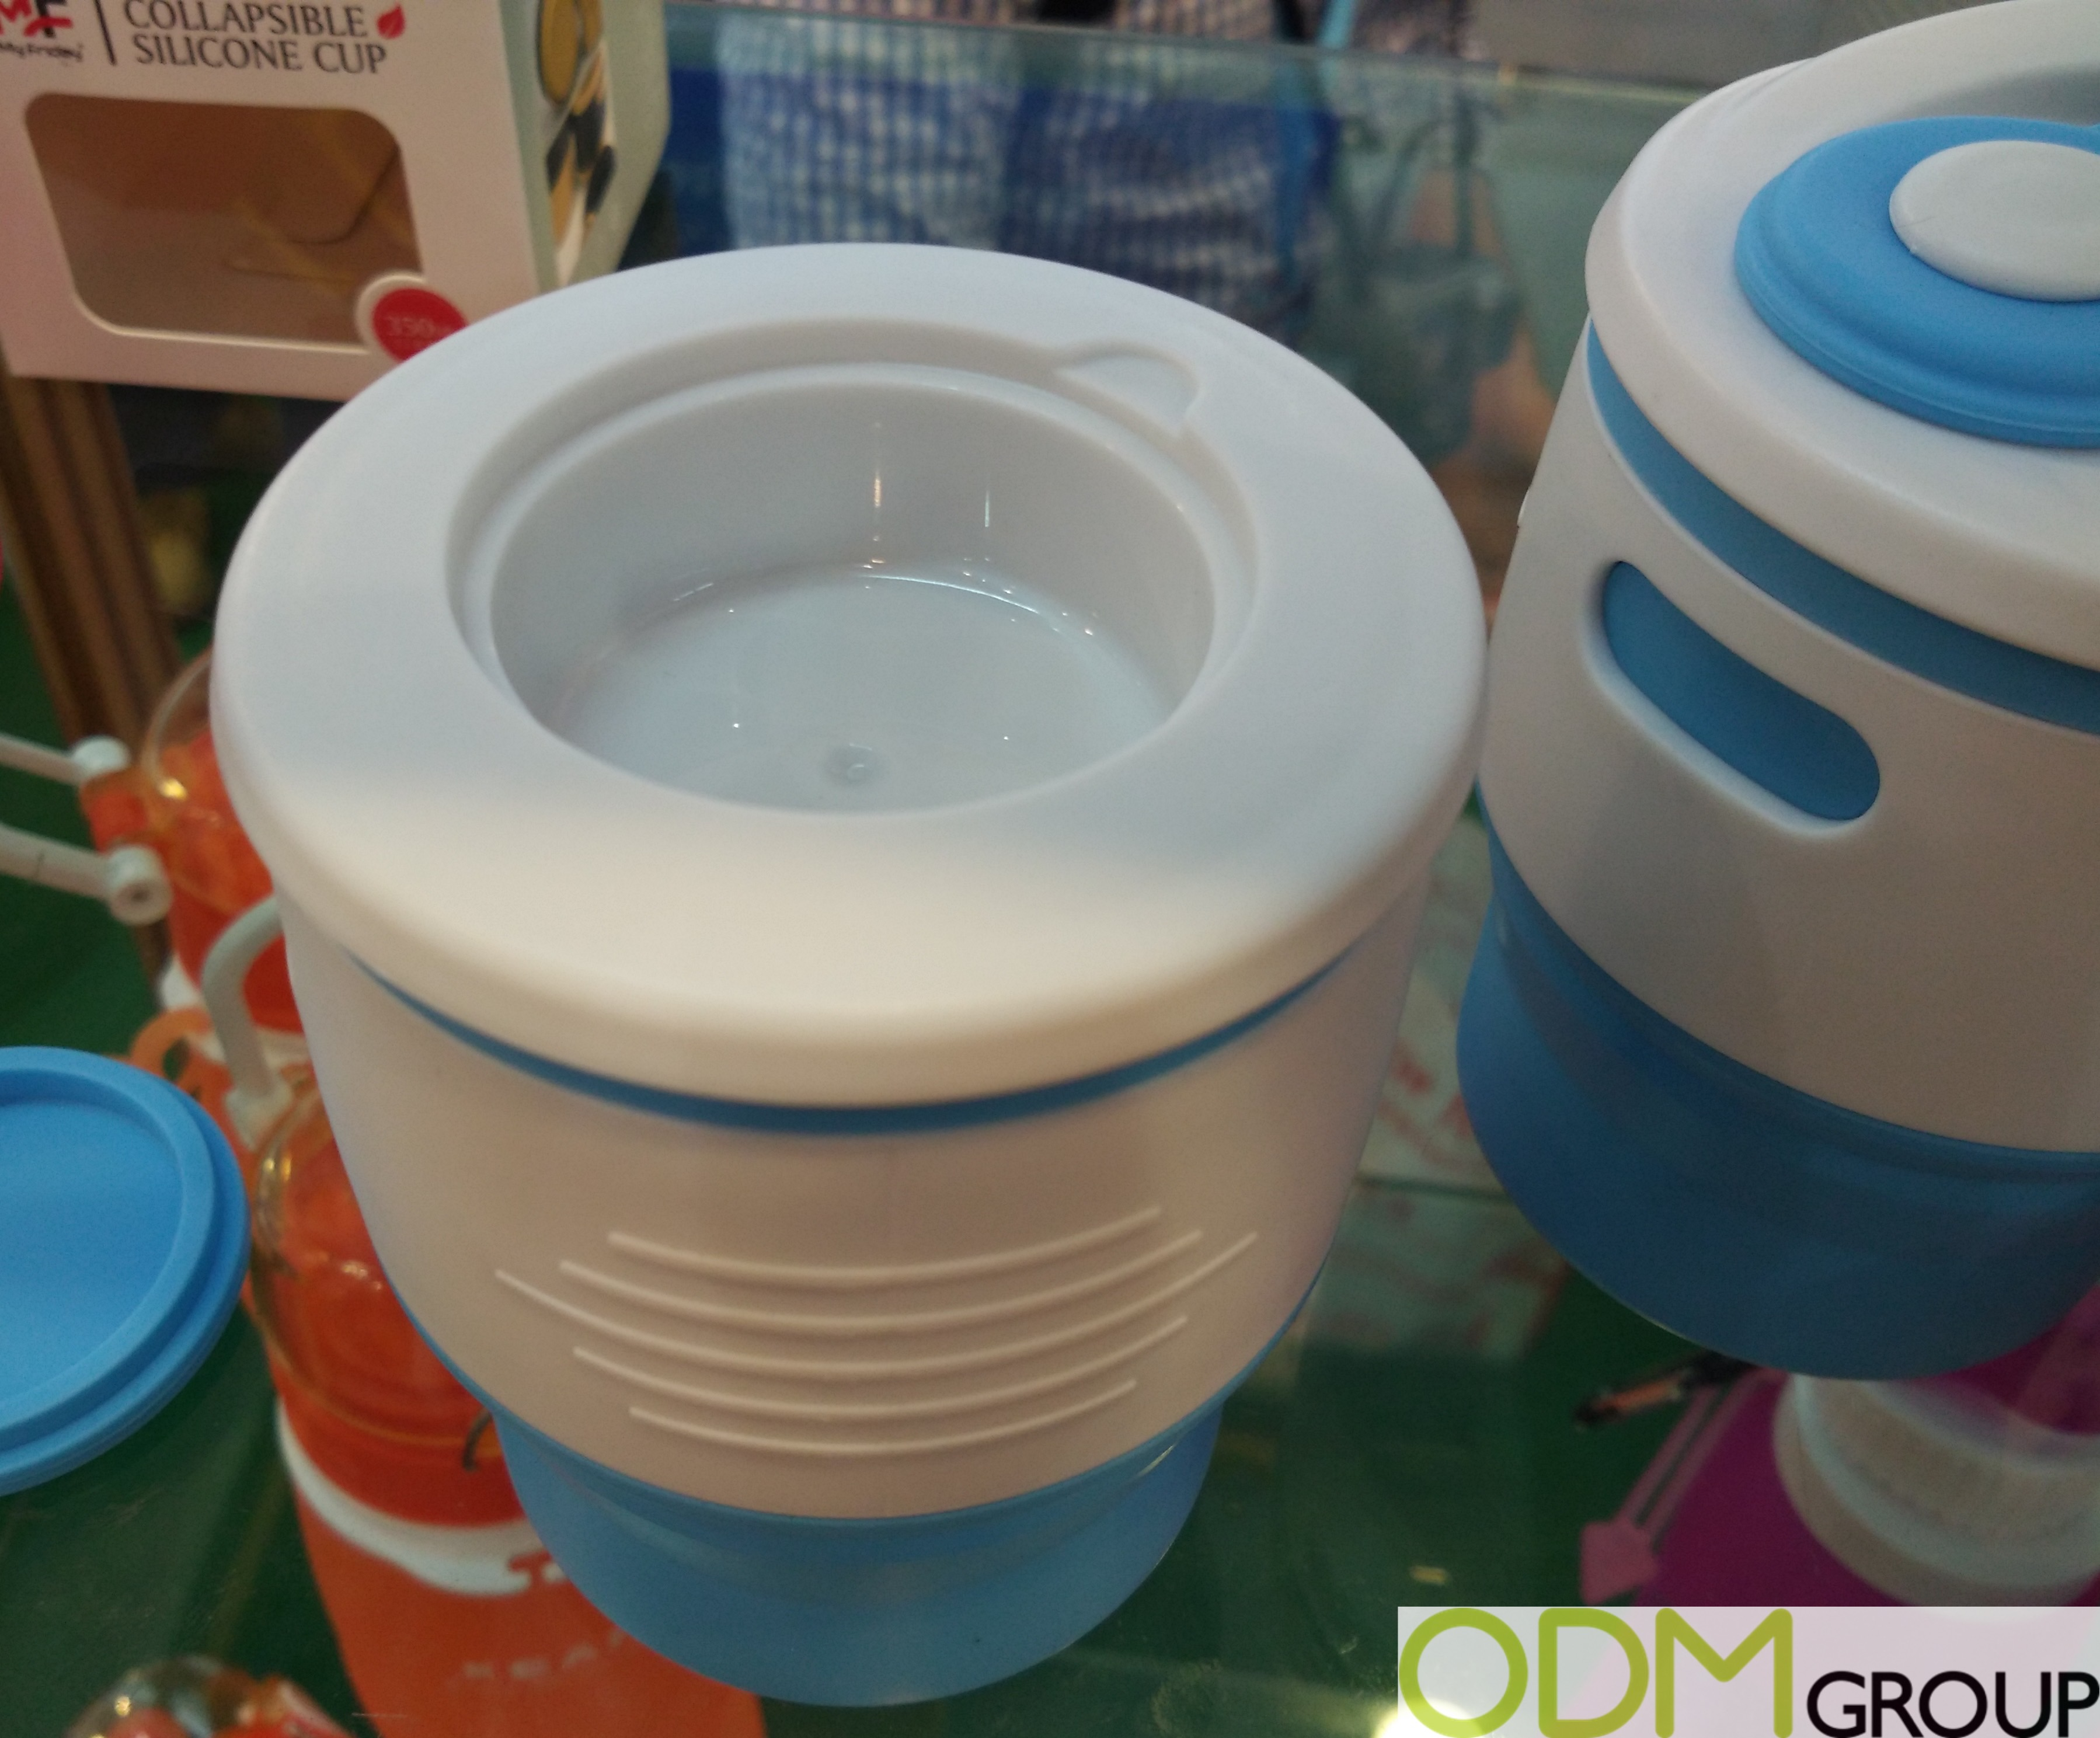 New Design for Silicone Collapsible Coffee Cups